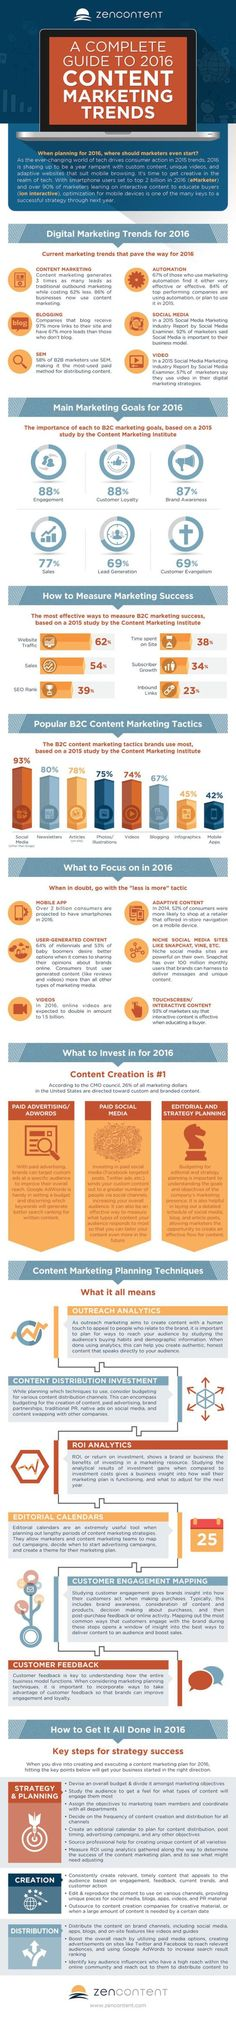 Content Marketing trends 2016